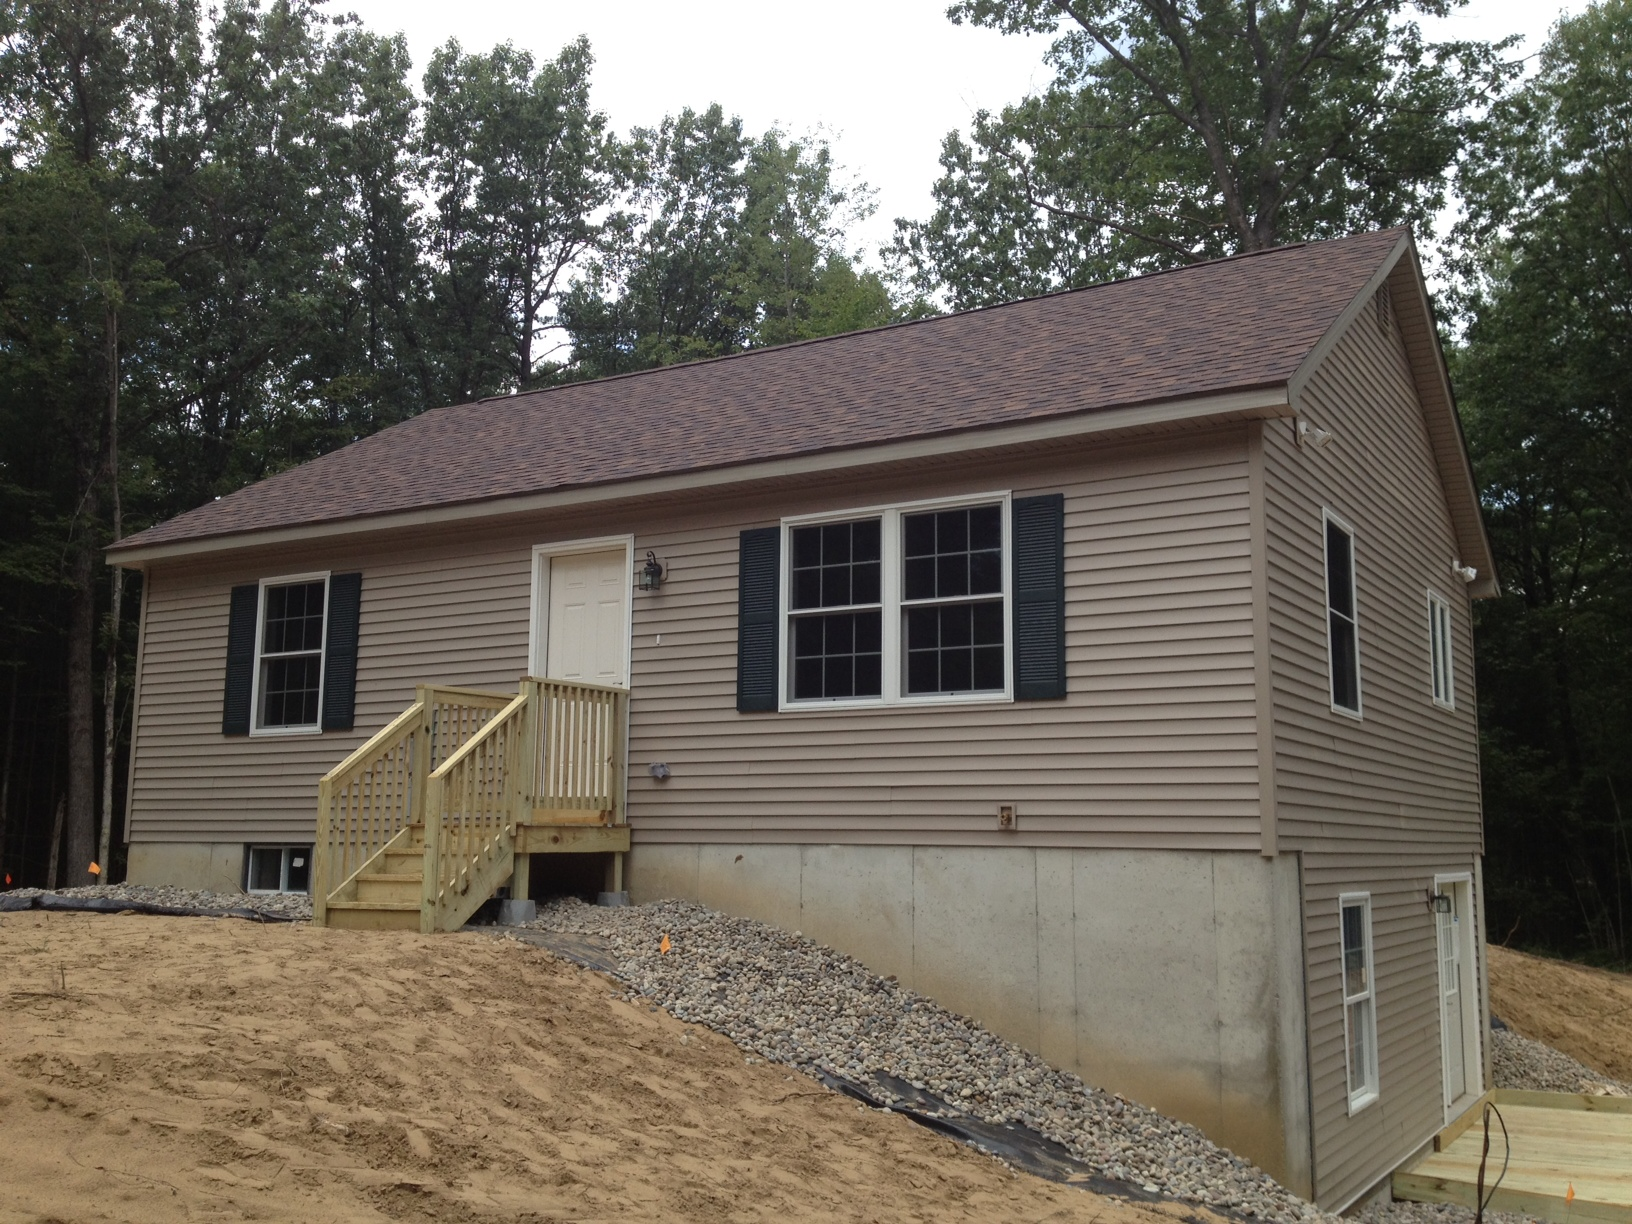 Upstate Modular Homes Serving The Albany Saratoga